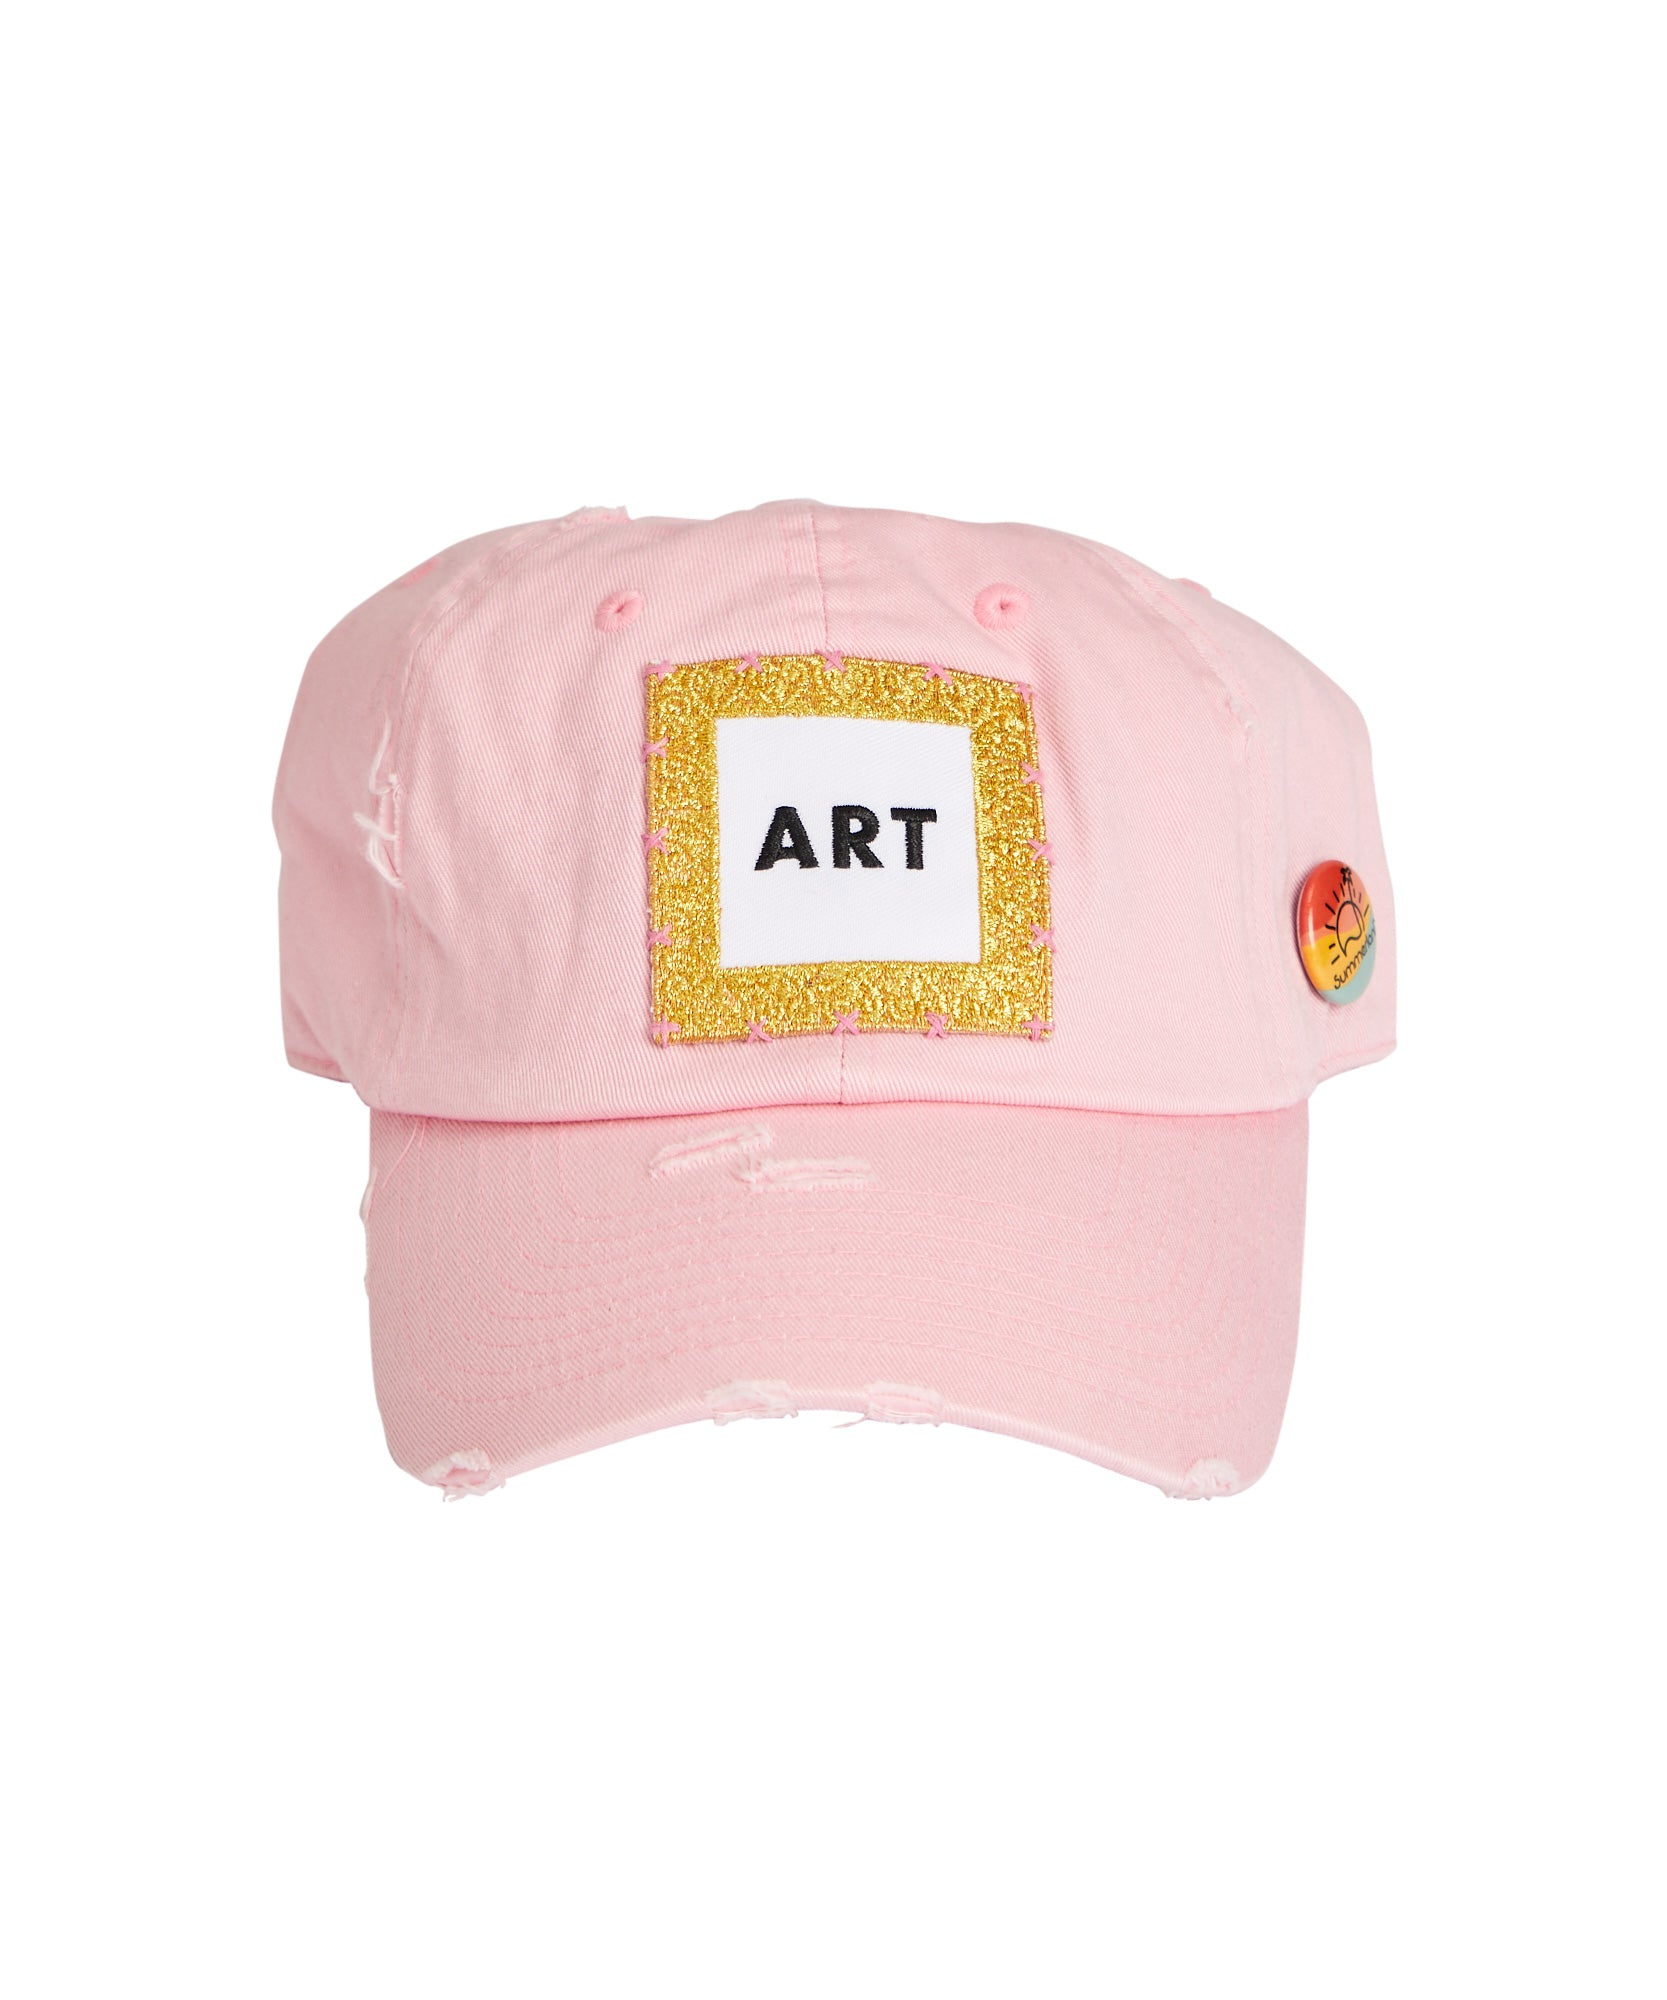 patch hat